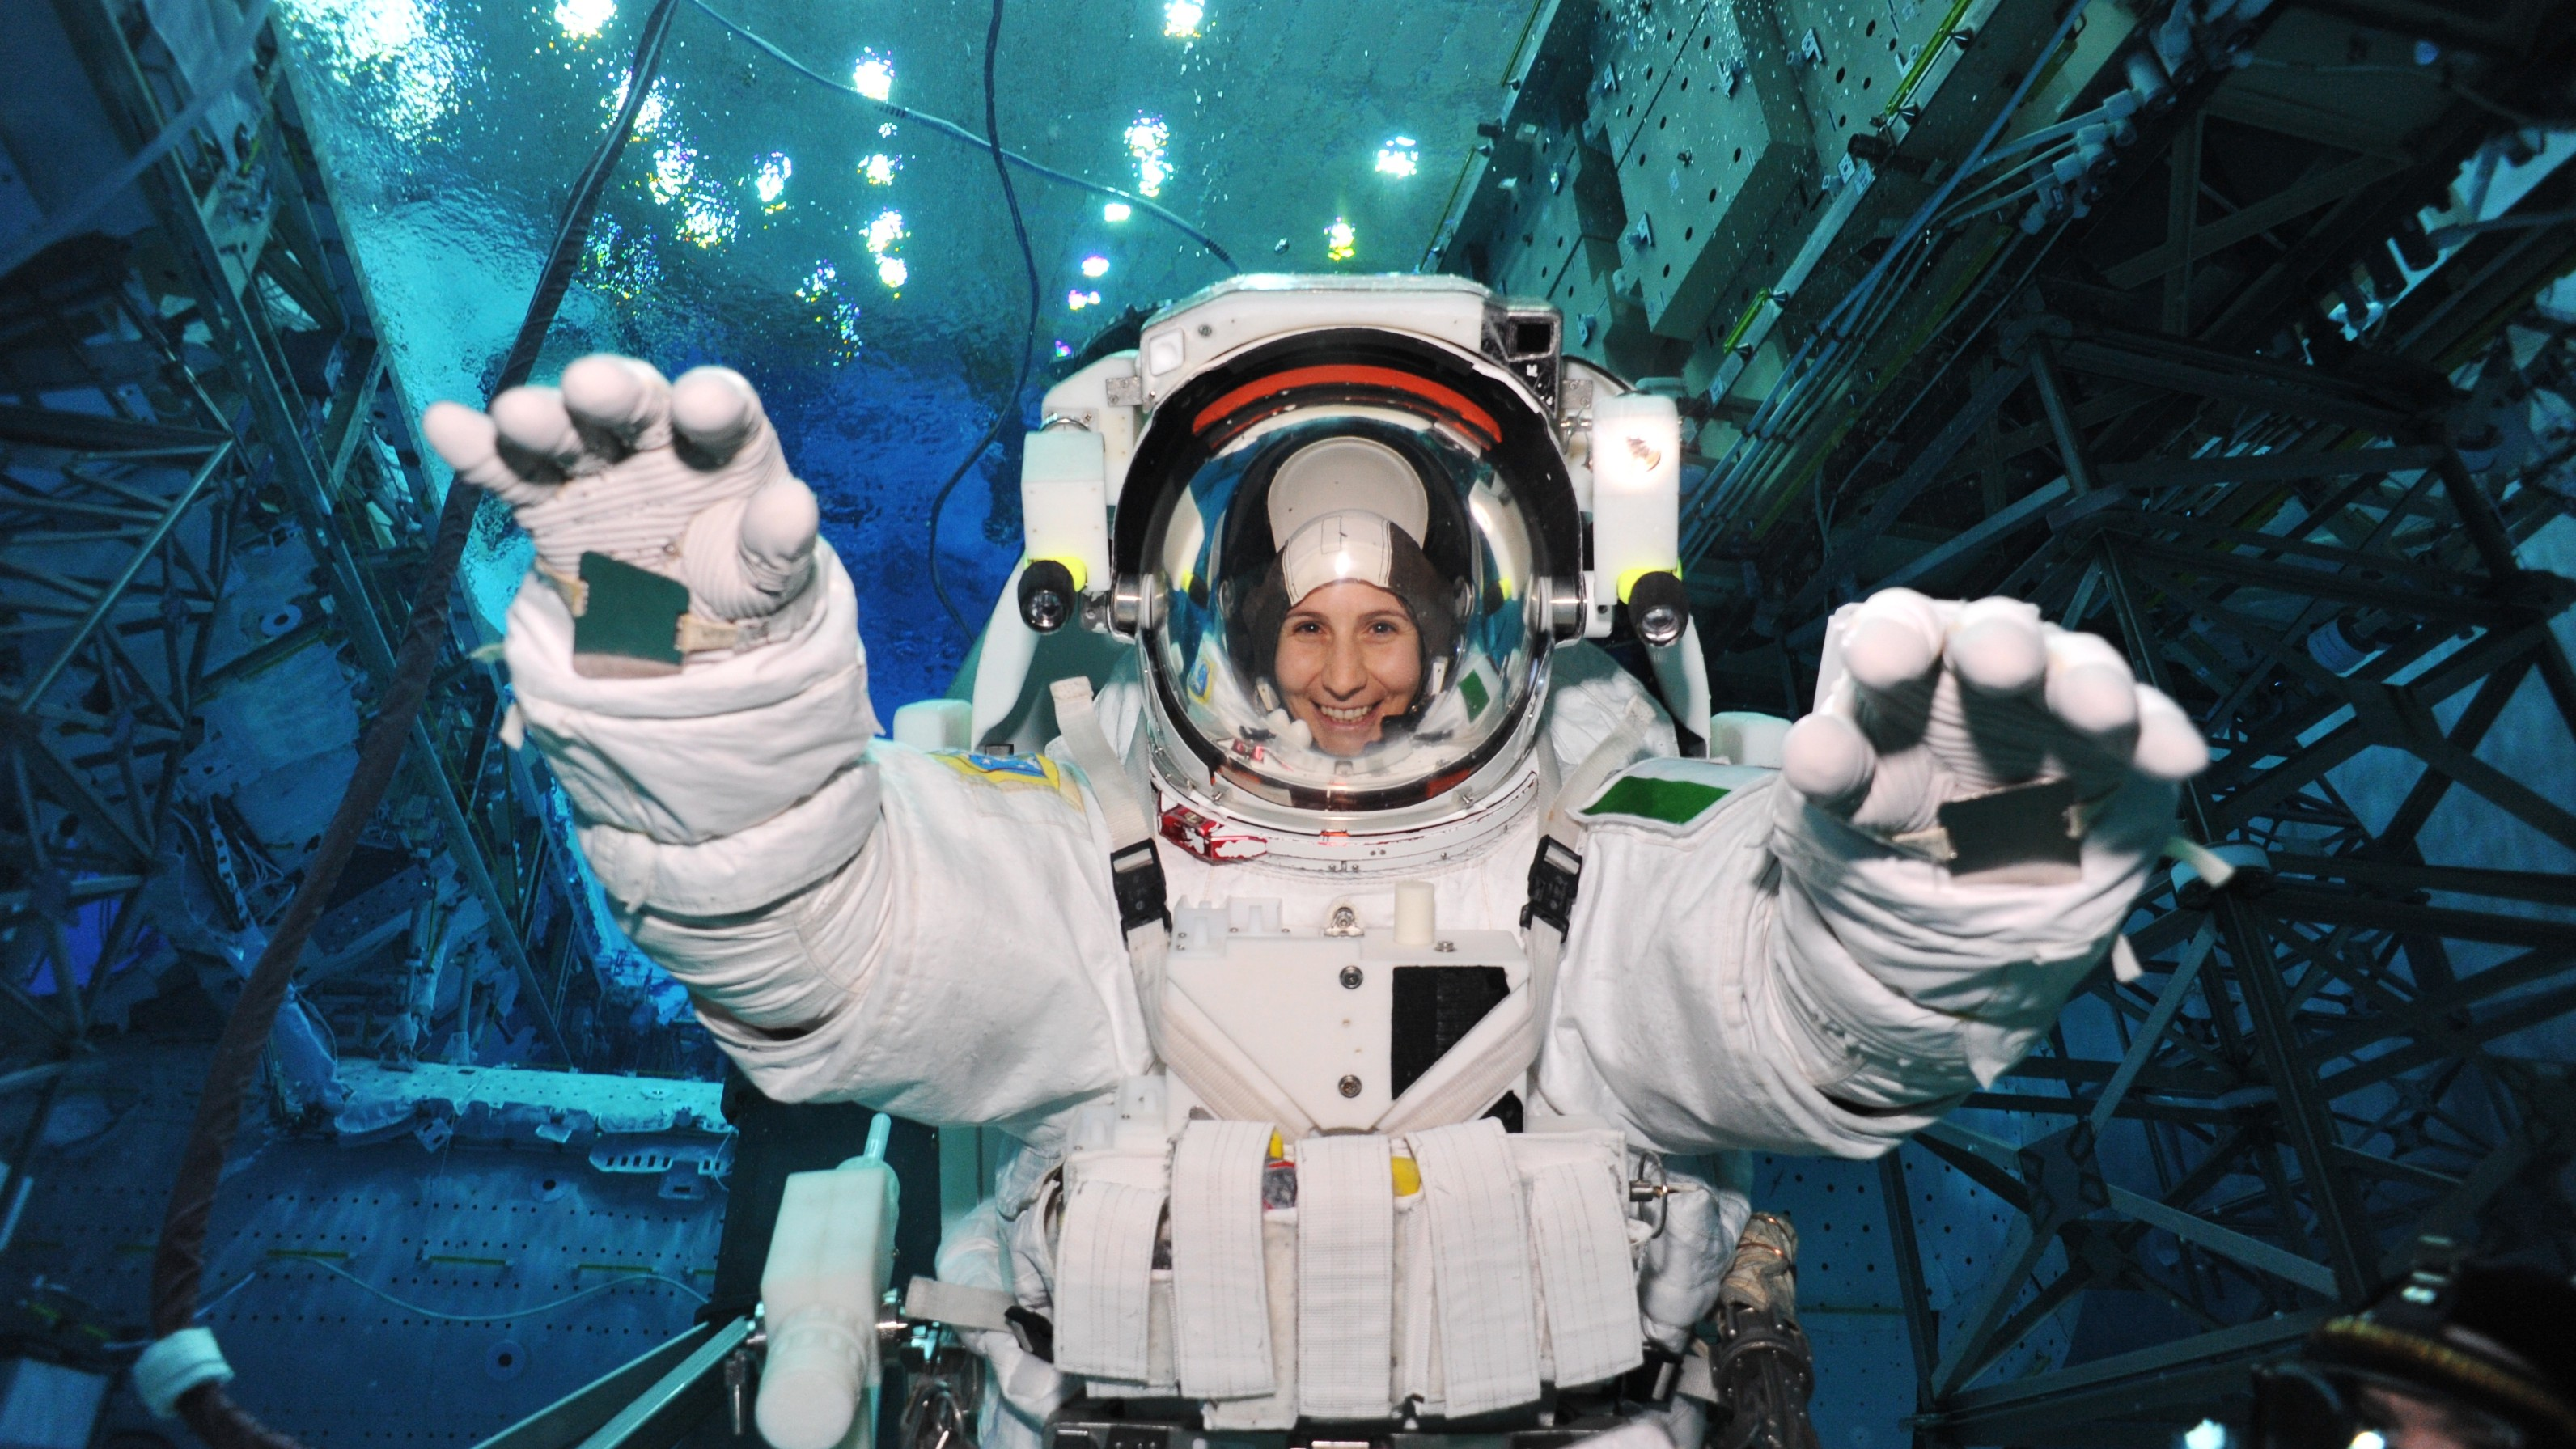 Italy Sends Its First Female Astronaut Into Space